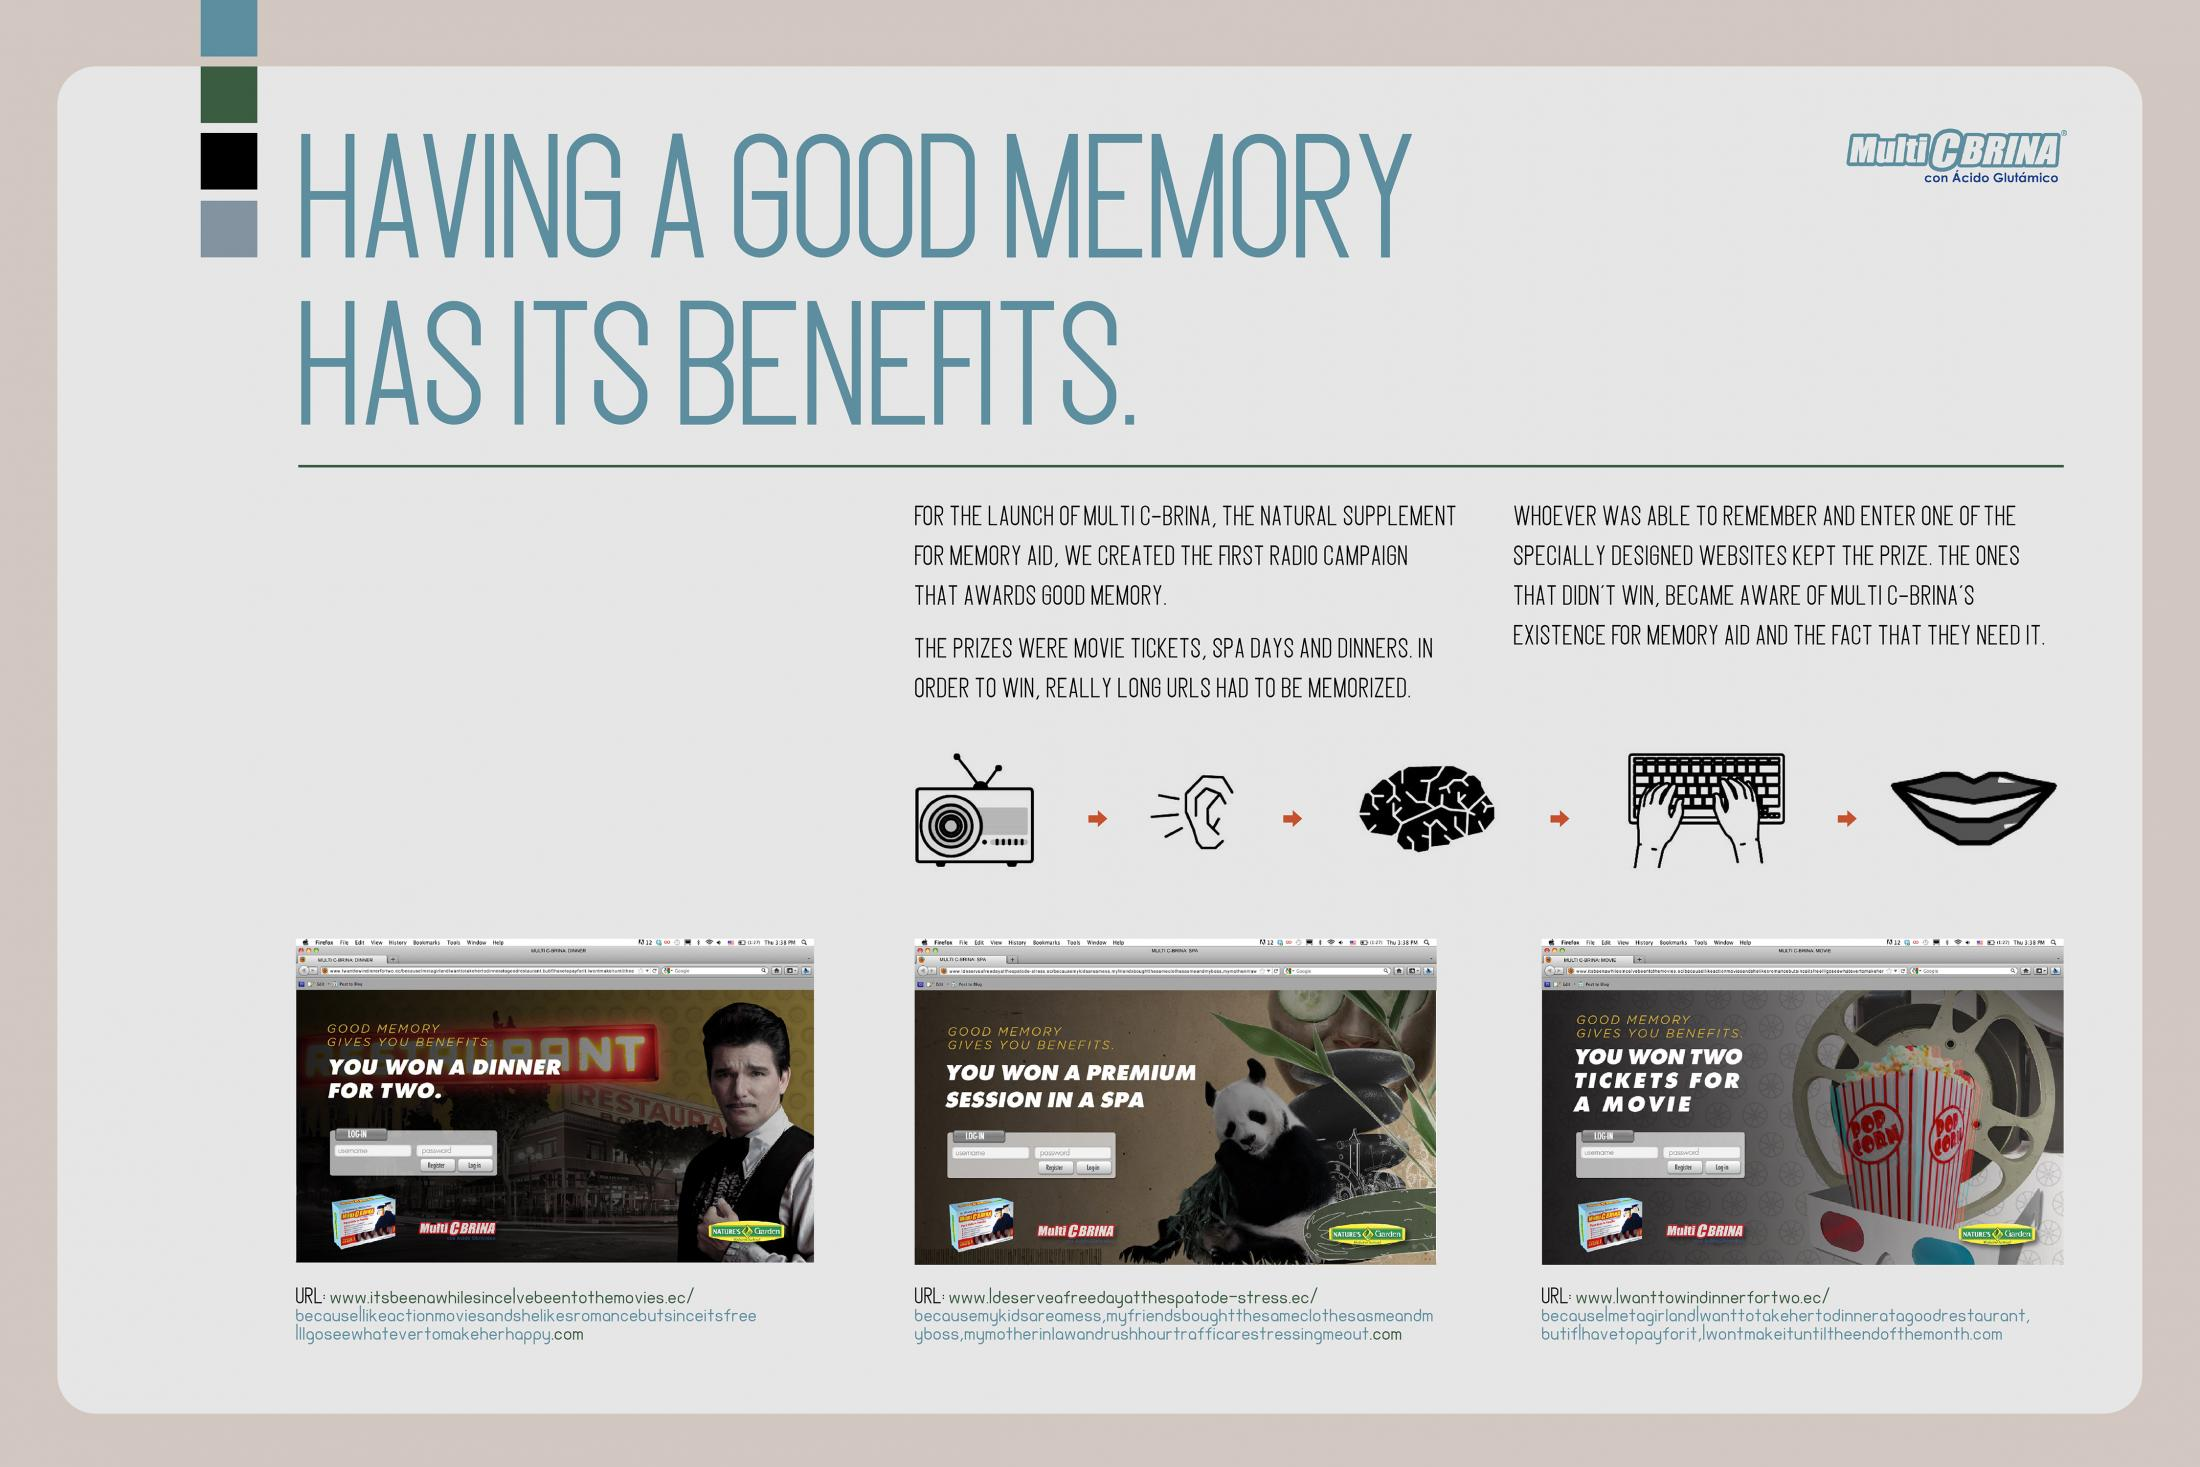 Thumbnail for Good Memory have Benefits